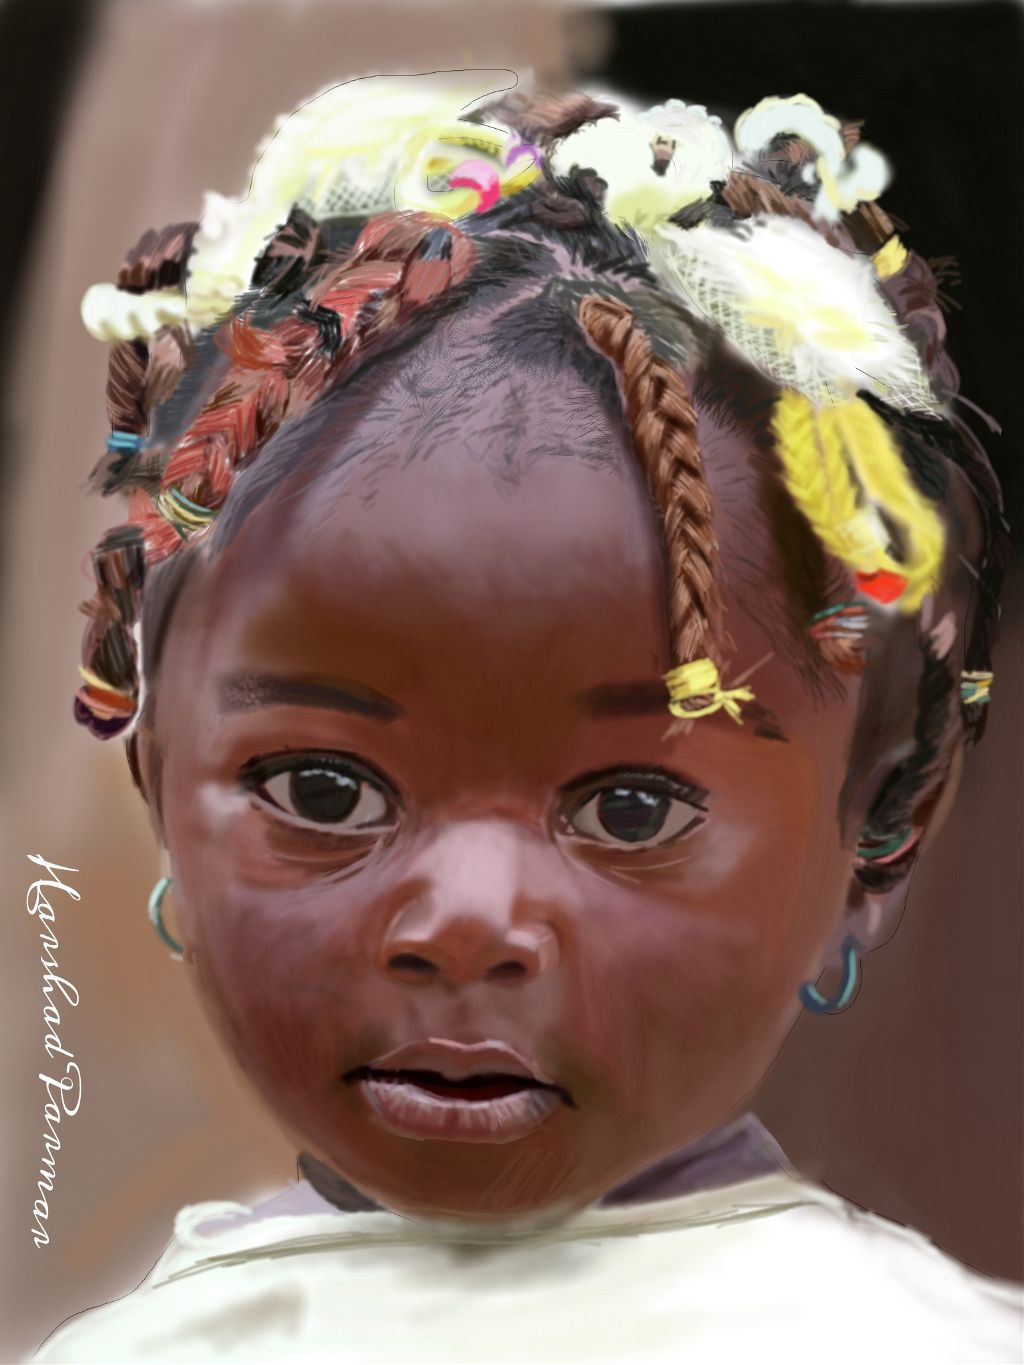 #wdpportrait #sweet little African girl# amazing Hair style# cute# innocent. Hope u all like it my friends. Thanx in advance for ur likes, votes, & repost if any.